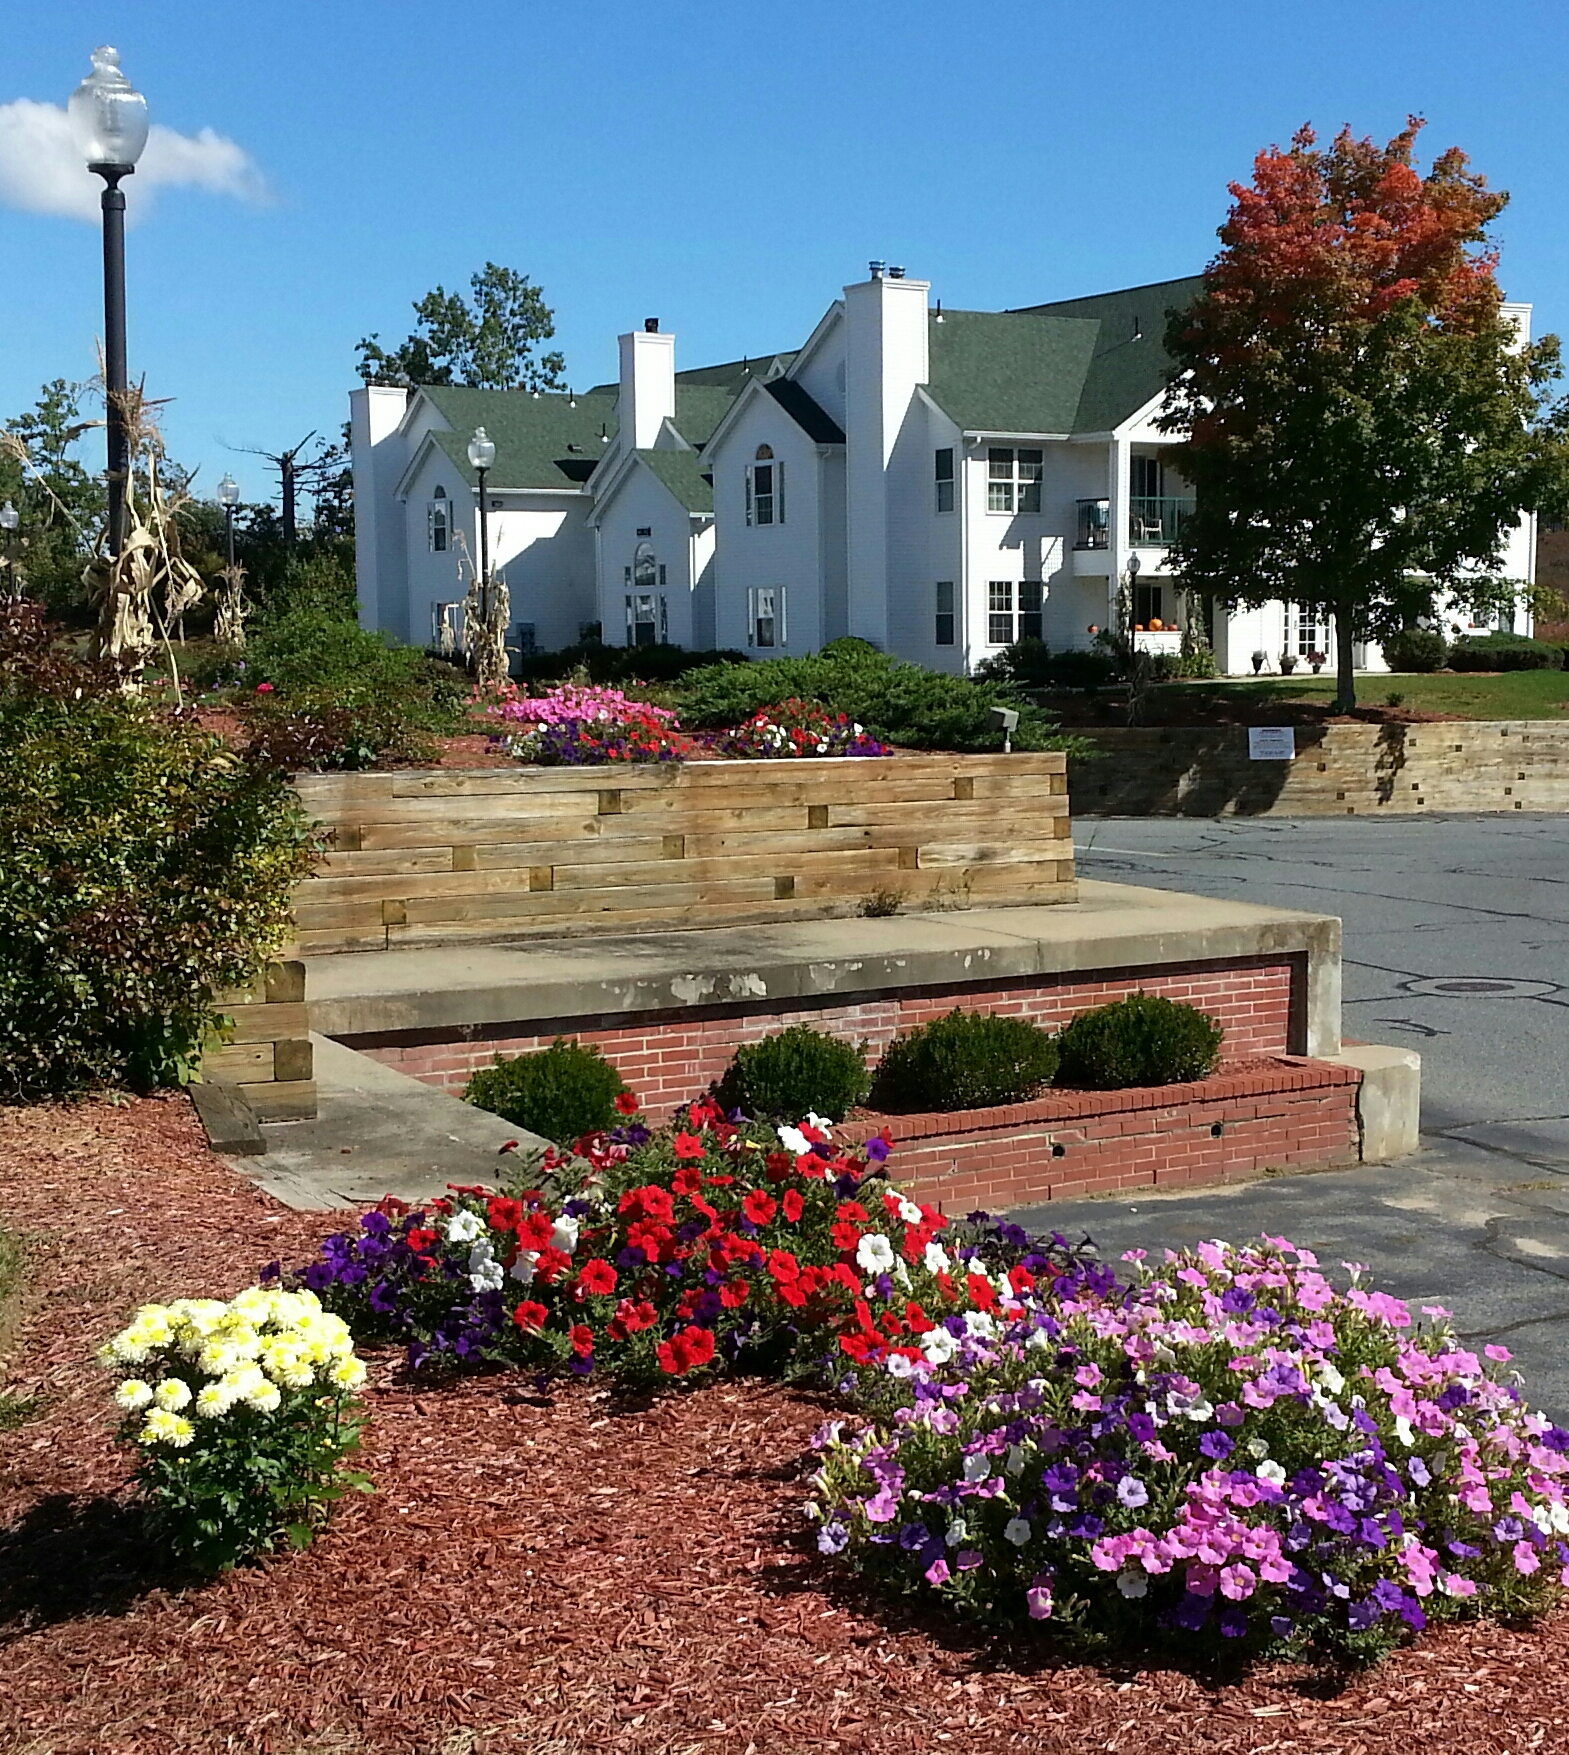 Rosemeade apartment building with white siding and green roof sits behind a raised flower bed with red stones and purple, red, and yellow petunias